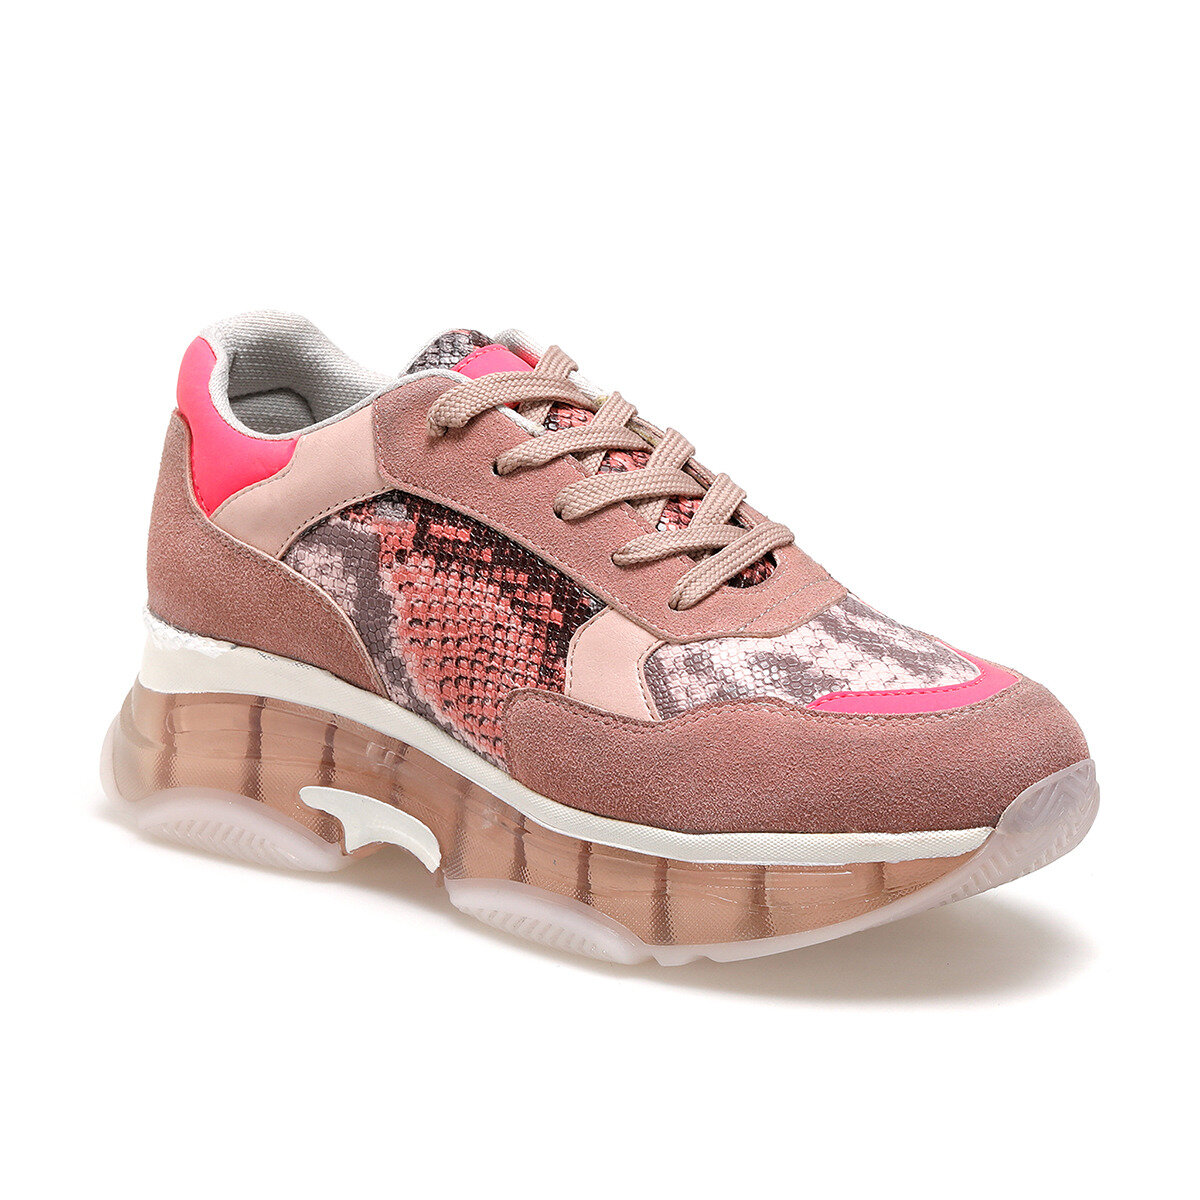 FLO 20S-083 Powder Women 'S Sneaker Shoes BUTIGO title=